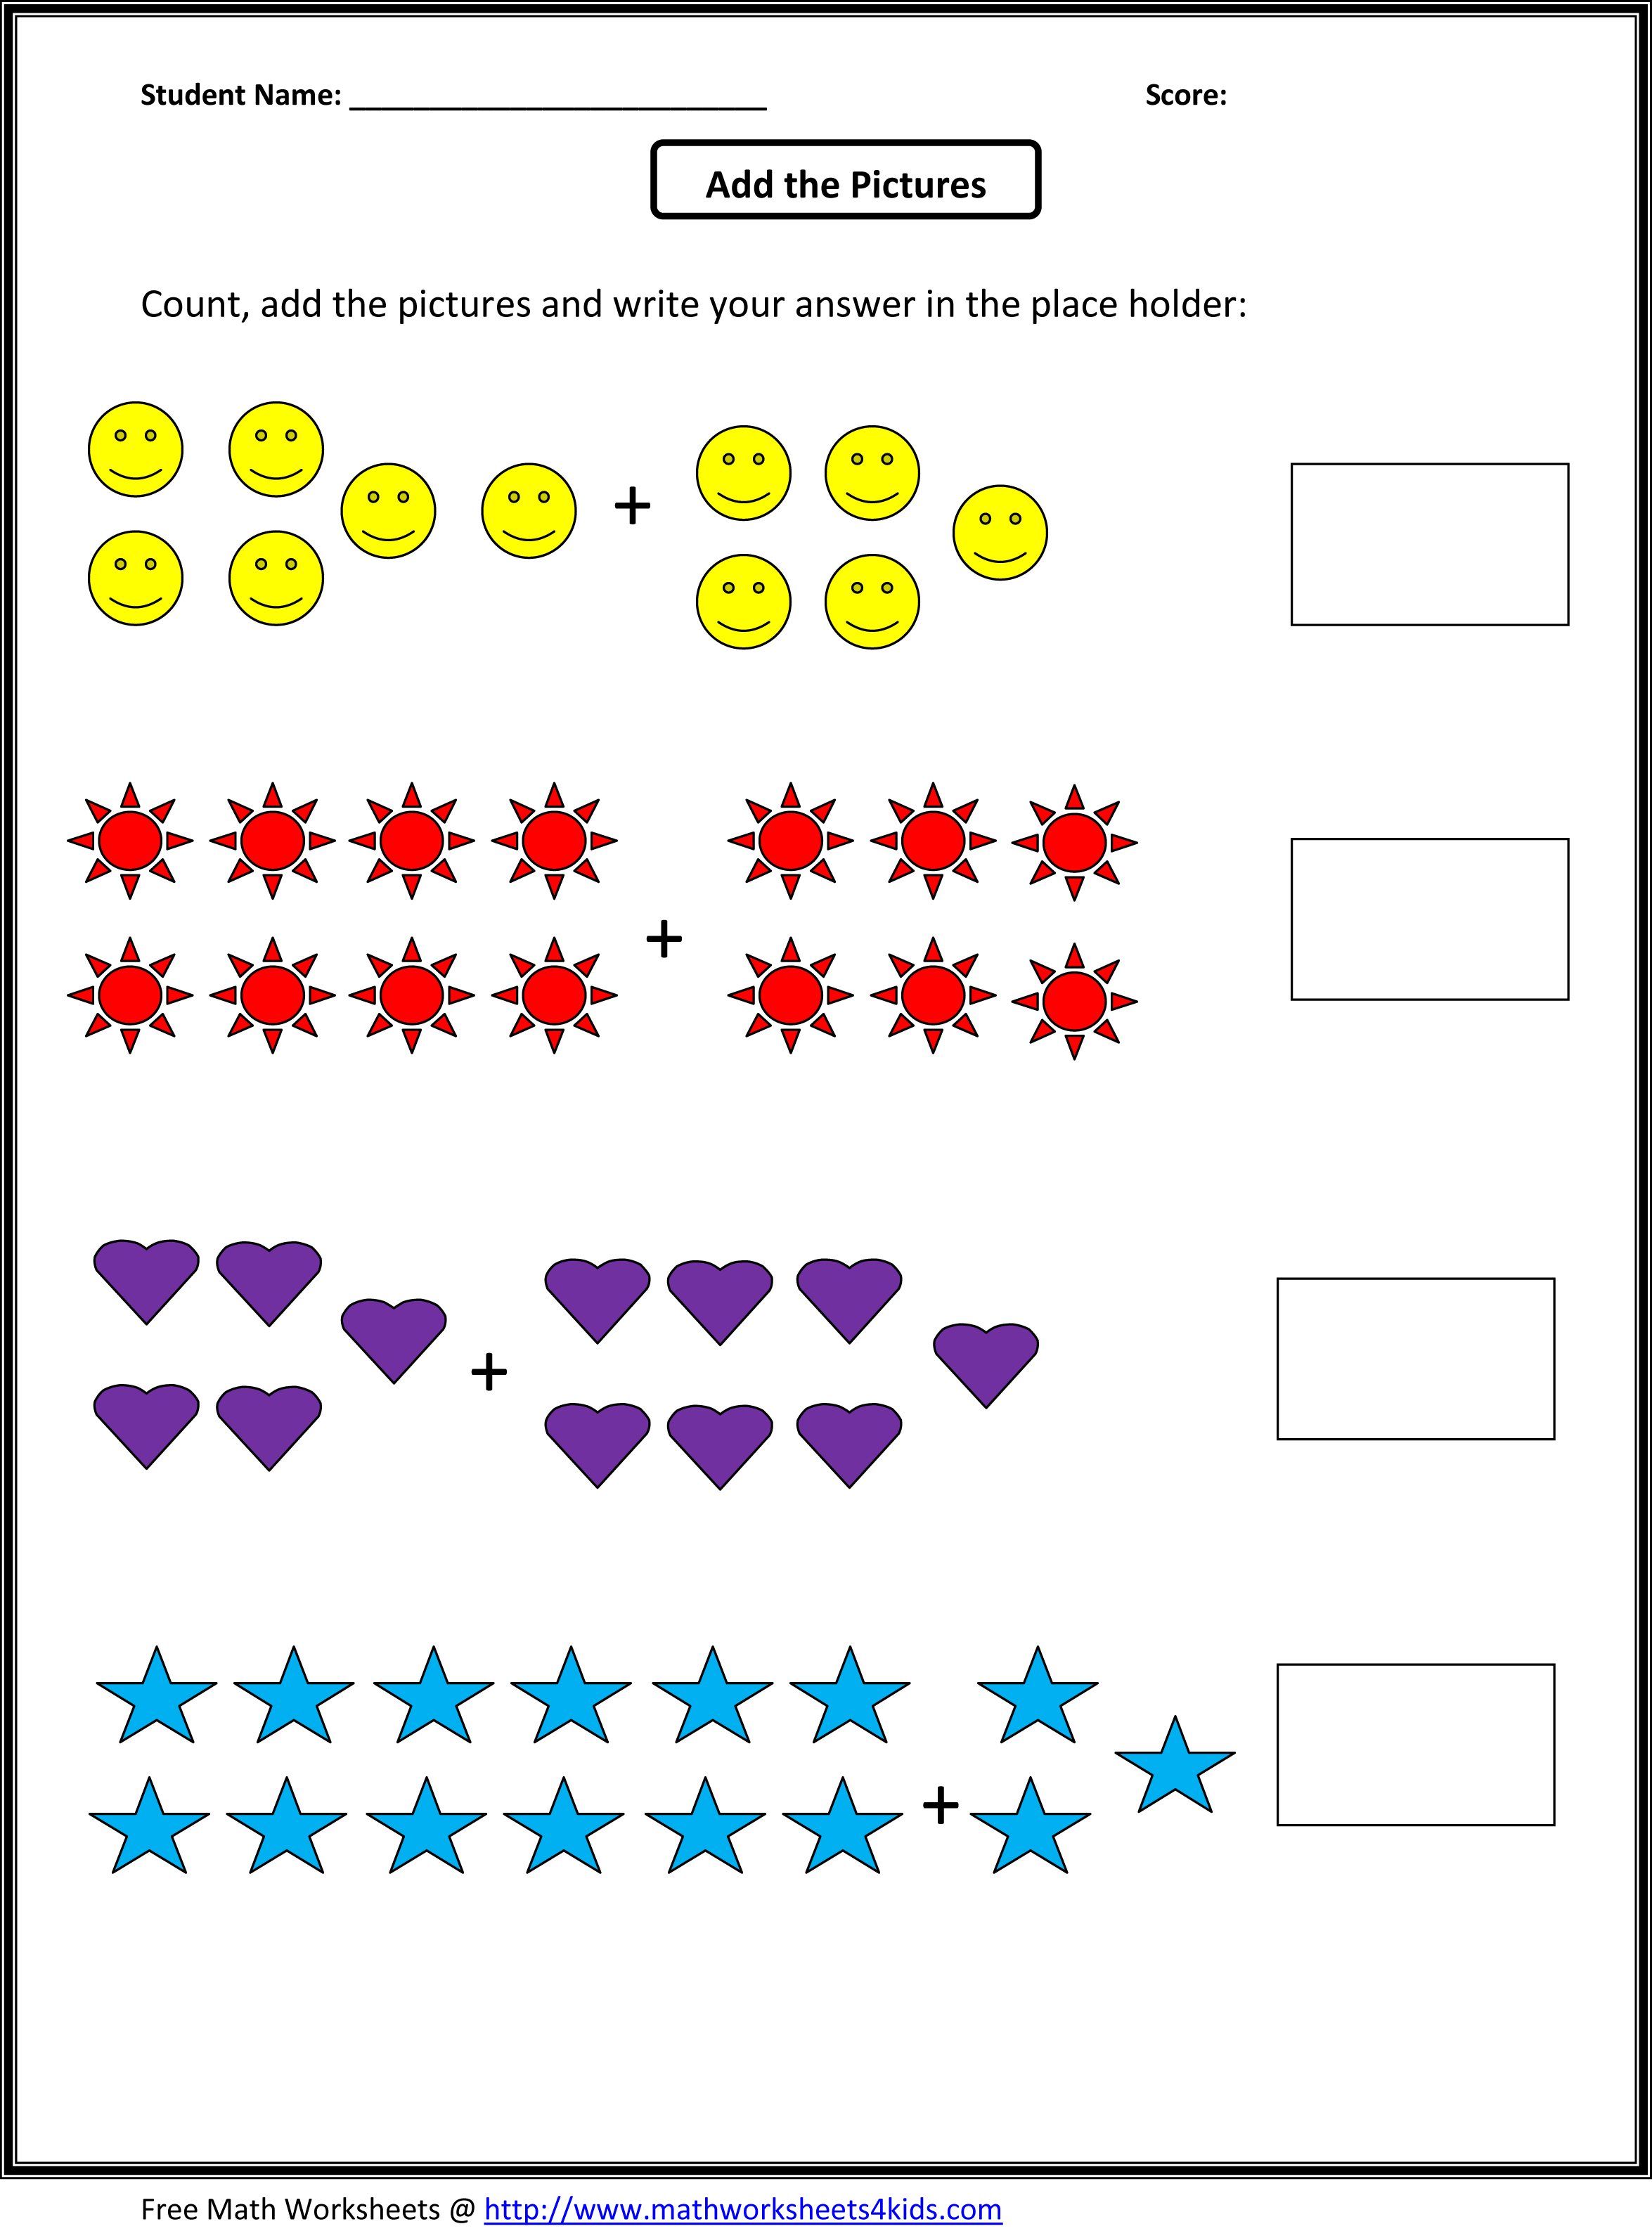 Proatmealus  Fascinating Grade  Maths Worksheet  Reocurent With Handsome Math Worksheets For St Grade Free  Reocurent With Astonishing School Kid Worksheets Also Seven Sacraments Worksheets In Addition Math Playground Worksheets And Maths Year  Worksheets As Well As Key Stage  French Worksheets Additionally Free Grade  Math Worksheets From Reocurentcom With Proatmealus  Handsome Grade  Maths Worksheet  Reocurent With Astonishing Math Worksheets For St Grade Free  Reocurent And Fascinating School Kid Worksheets Also Seven Sacraments Worksheets In Addition Math Playground Worksheets From Reocurentcom